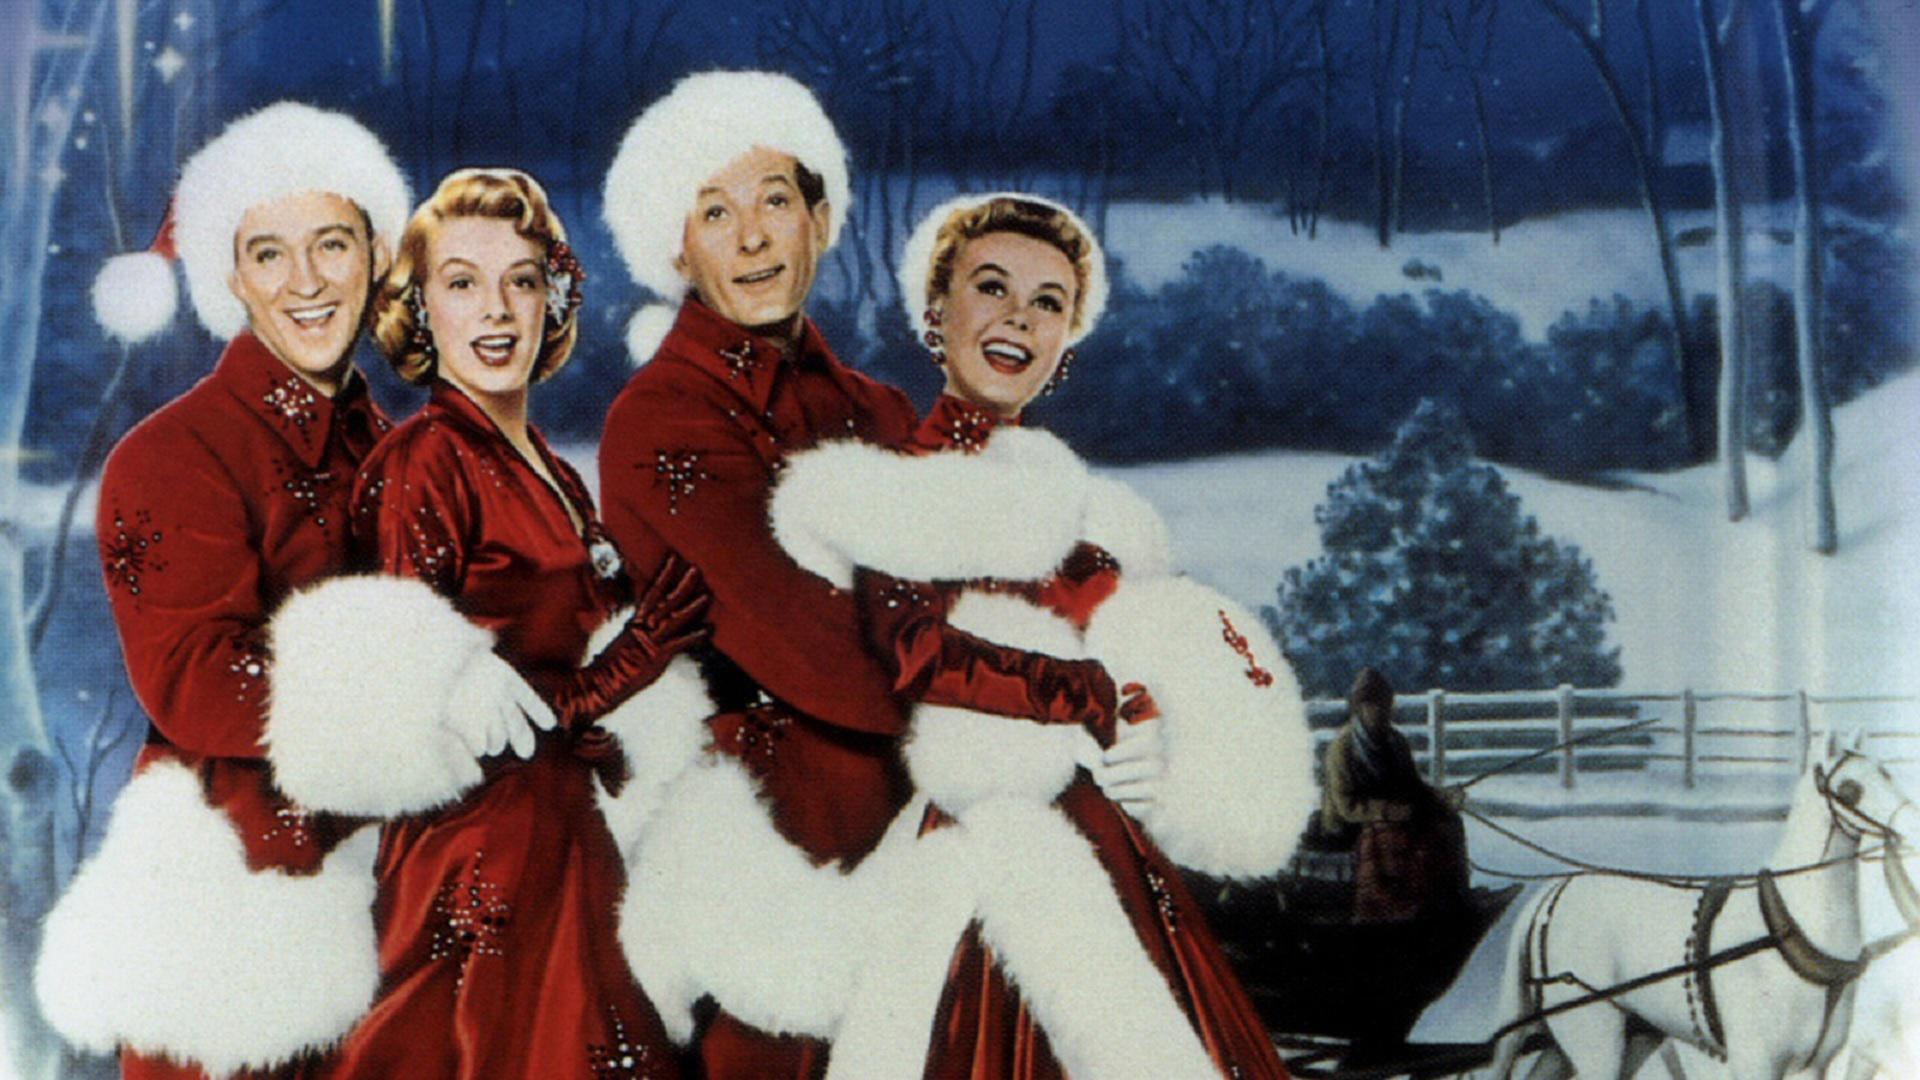 White Christmas Movie.White Christmas 17 Facts About The Film You Probably Never